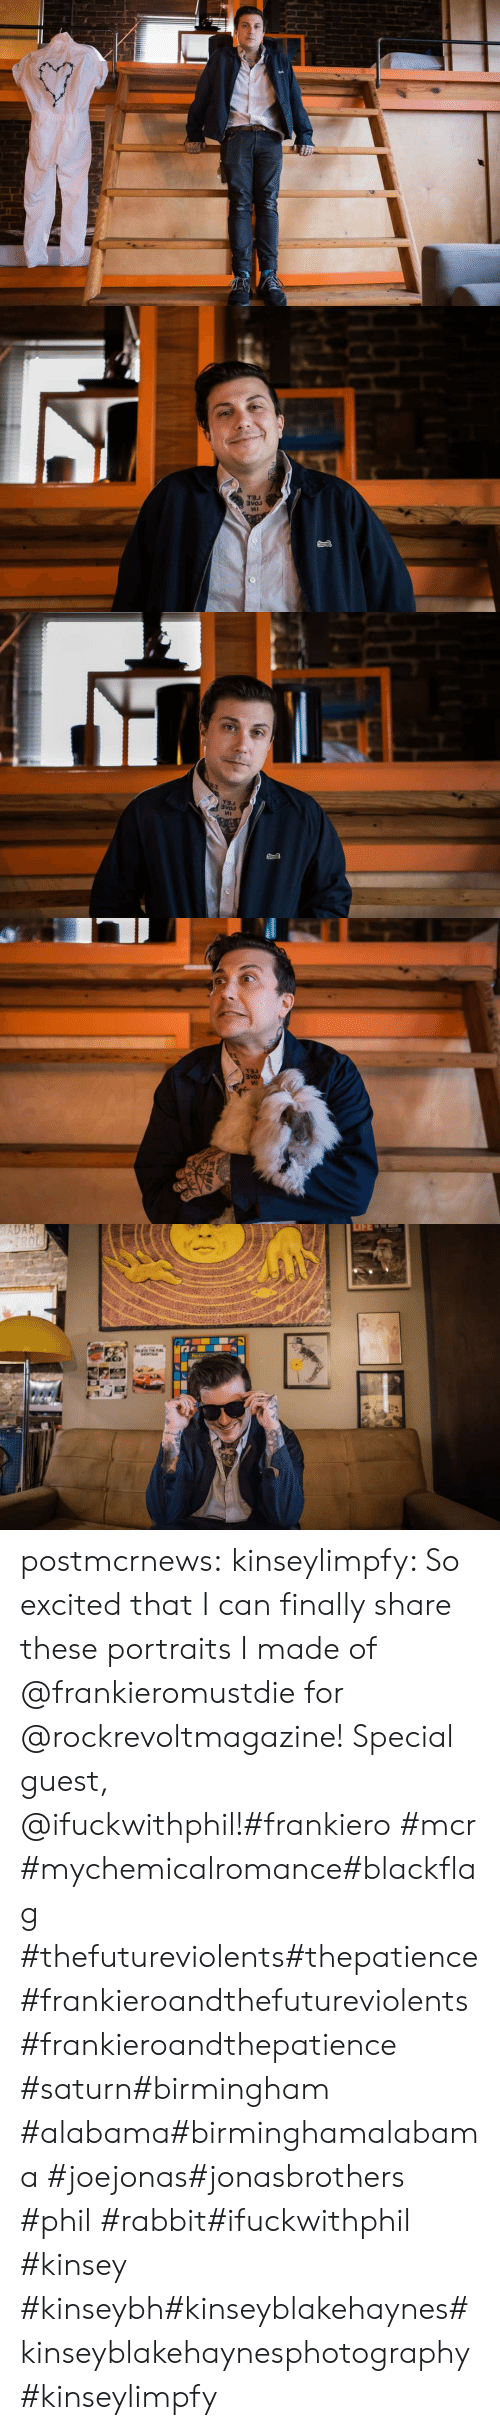 Guest: VEE   и   RADAR  TROL  LIFE  SOTACE  TH postmcrnews:  kinseylimpfy: So excited that I can finally share these portraits I made of @frankieromustdie for @rockrevoltmagazine! Special guest, @ifuckwithphil!#frankiero #mcr #mychemicalromance#blackflag #thefutureviolents#thepatience#frankieroandthefutureviolents#frankieroandthepatience #saturn#birmingham #alabama#birminghamalabama #joejonas#jonasbrothers #phil #rabbit#ifuckwithphil #kinsey #kinseybh#kinseyblakehaynes#kinseyblakehaynesphotography#kinseylimpfy